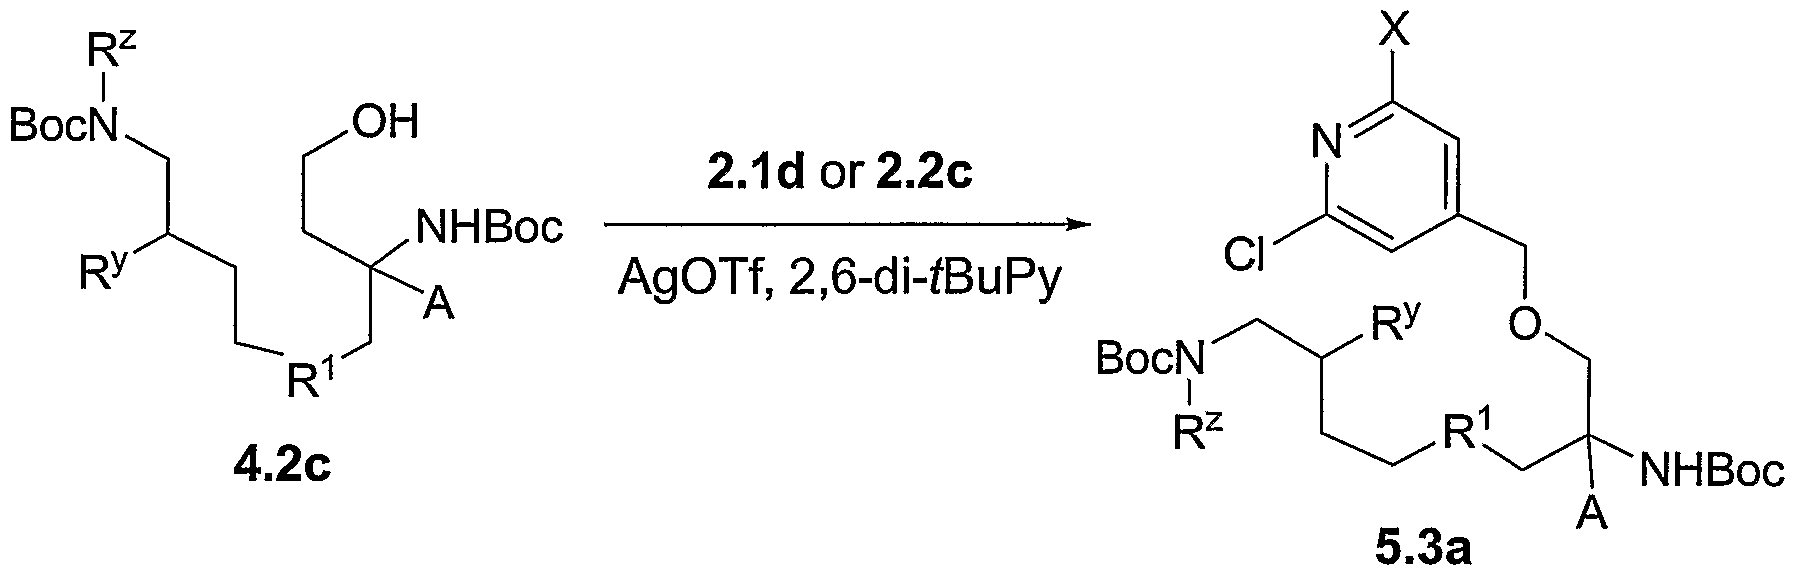 5b macrocyclic synthesis prelab Lab report on synthesis of cu(ii) - tetraphenylporphinate - artxy  molar mass  of pyrrole: 4 x 1201 + 1401 + 5 x 10079 = 6709 g mol-1  the oxidation of this  macrocycle by oxygen then generates the fully conjugated porphyrin ring.